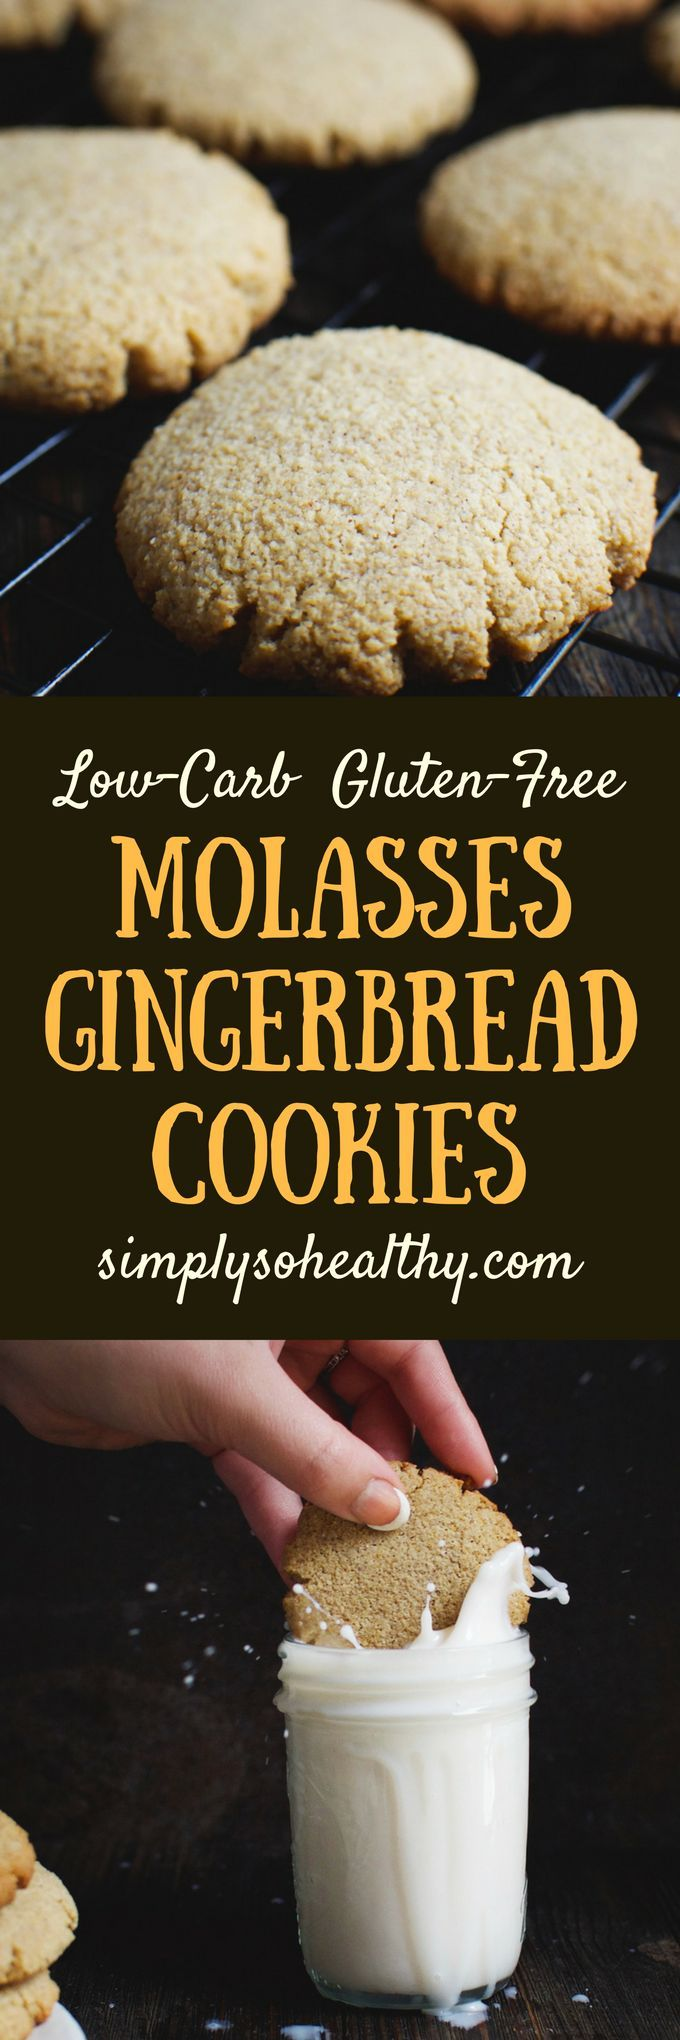 1 g net carbs!  Our recipe for Low-Carb Molasses Gingerbread Cookies is just in time for the holidays!